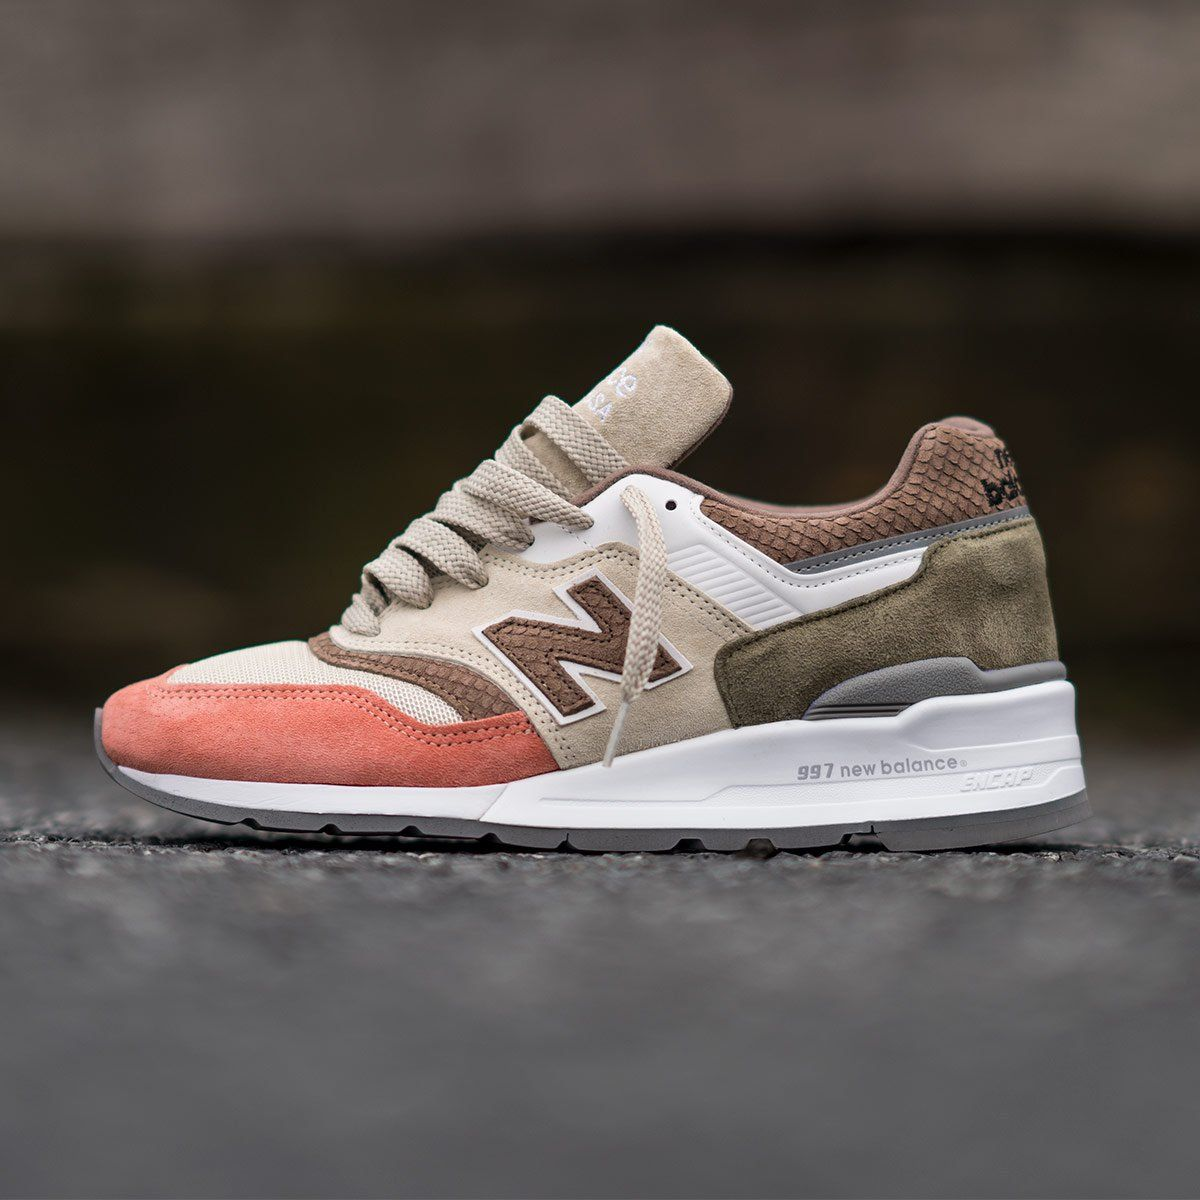 san francisco f390d cf93f Now Available: New Balance 997